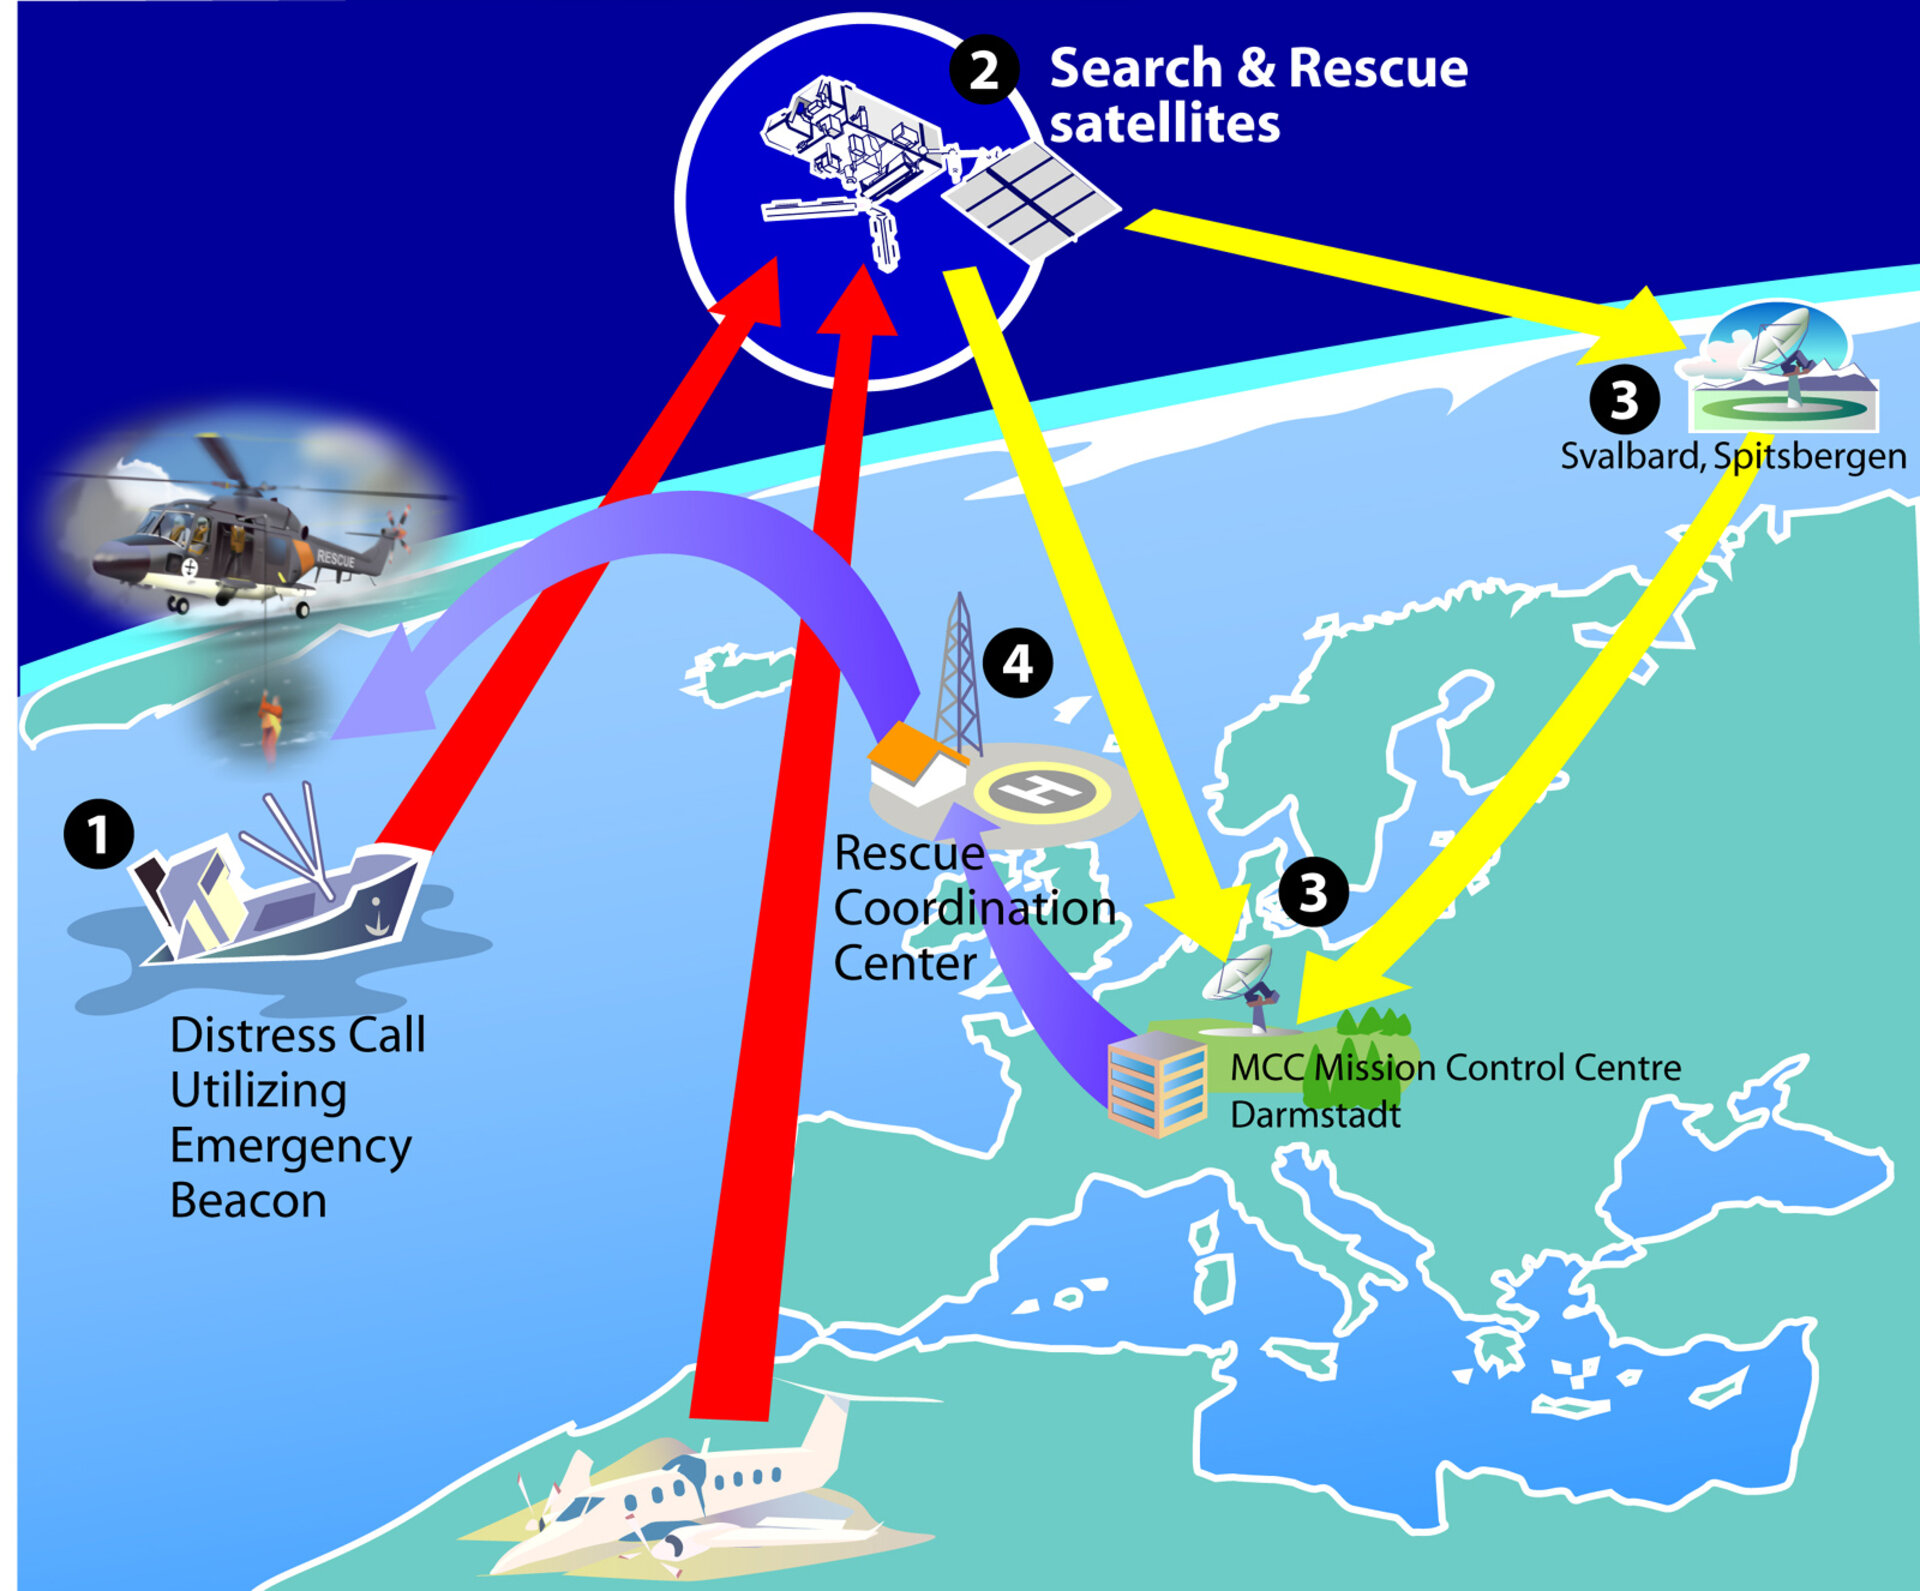 Search and Rescue with MetOp